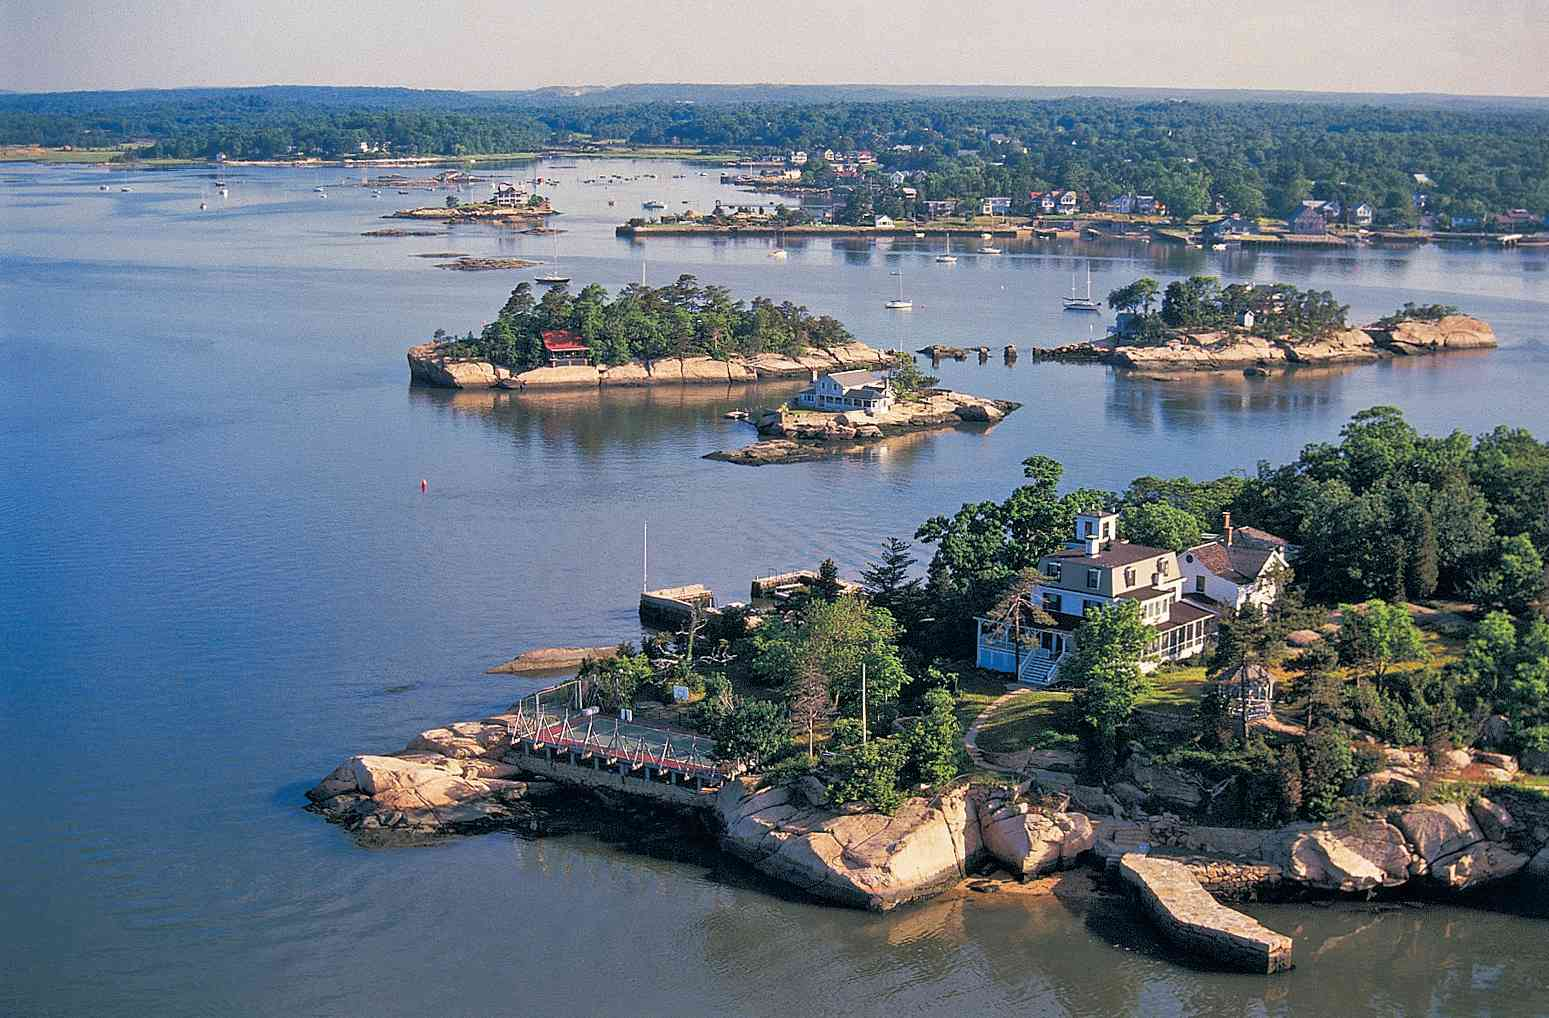 Aerial view of the Thimble Islands, CT